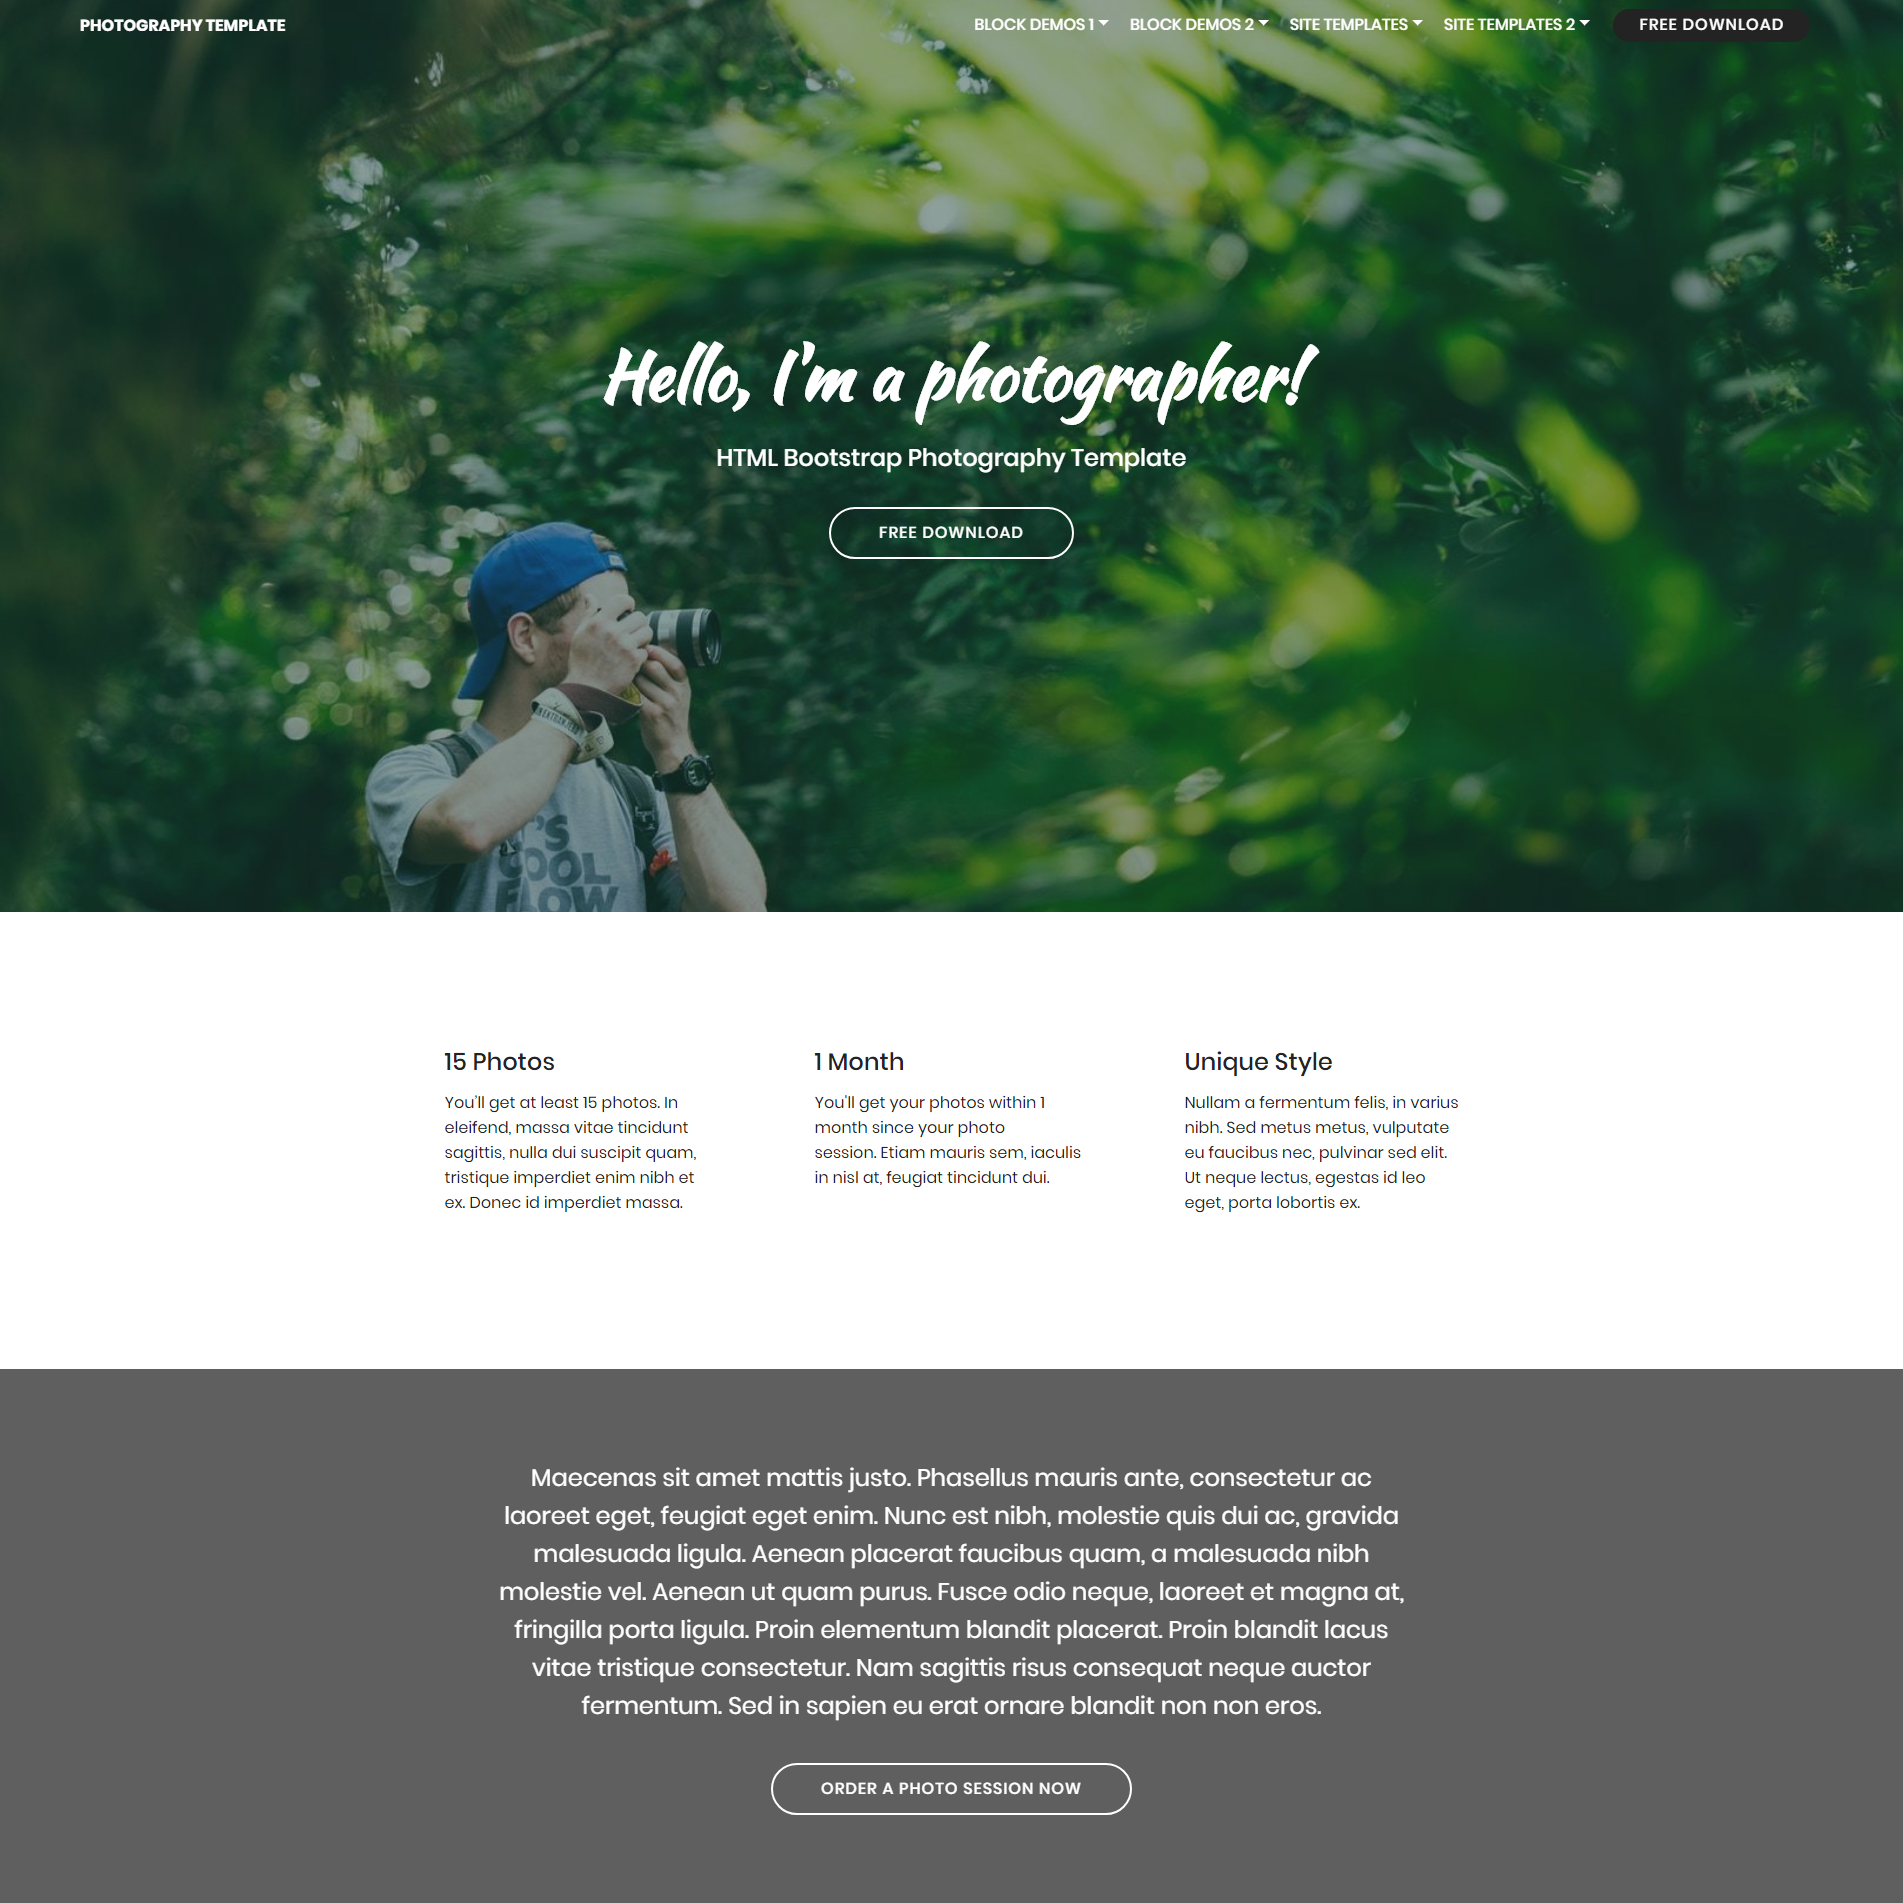 HTML5 Bootstrap Photography Themes